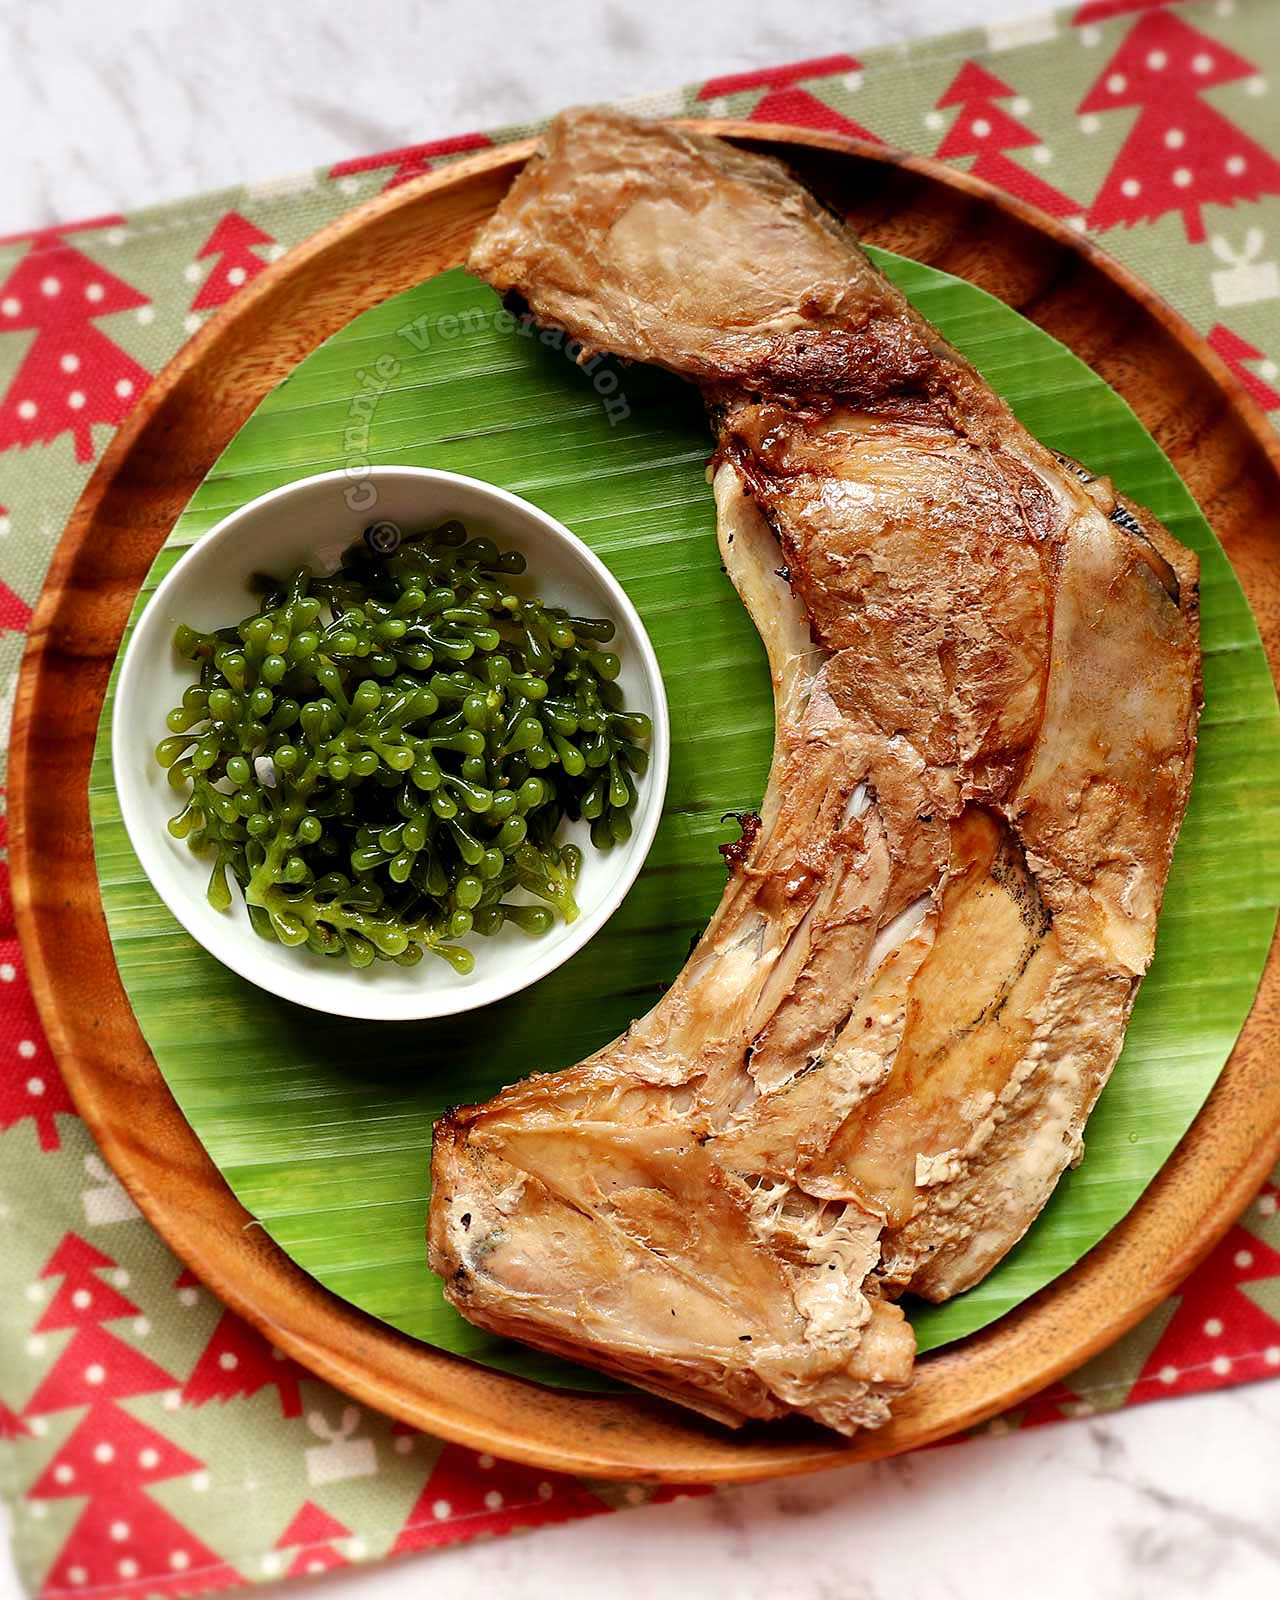 Grilled tuna collar with sea grapes on the side